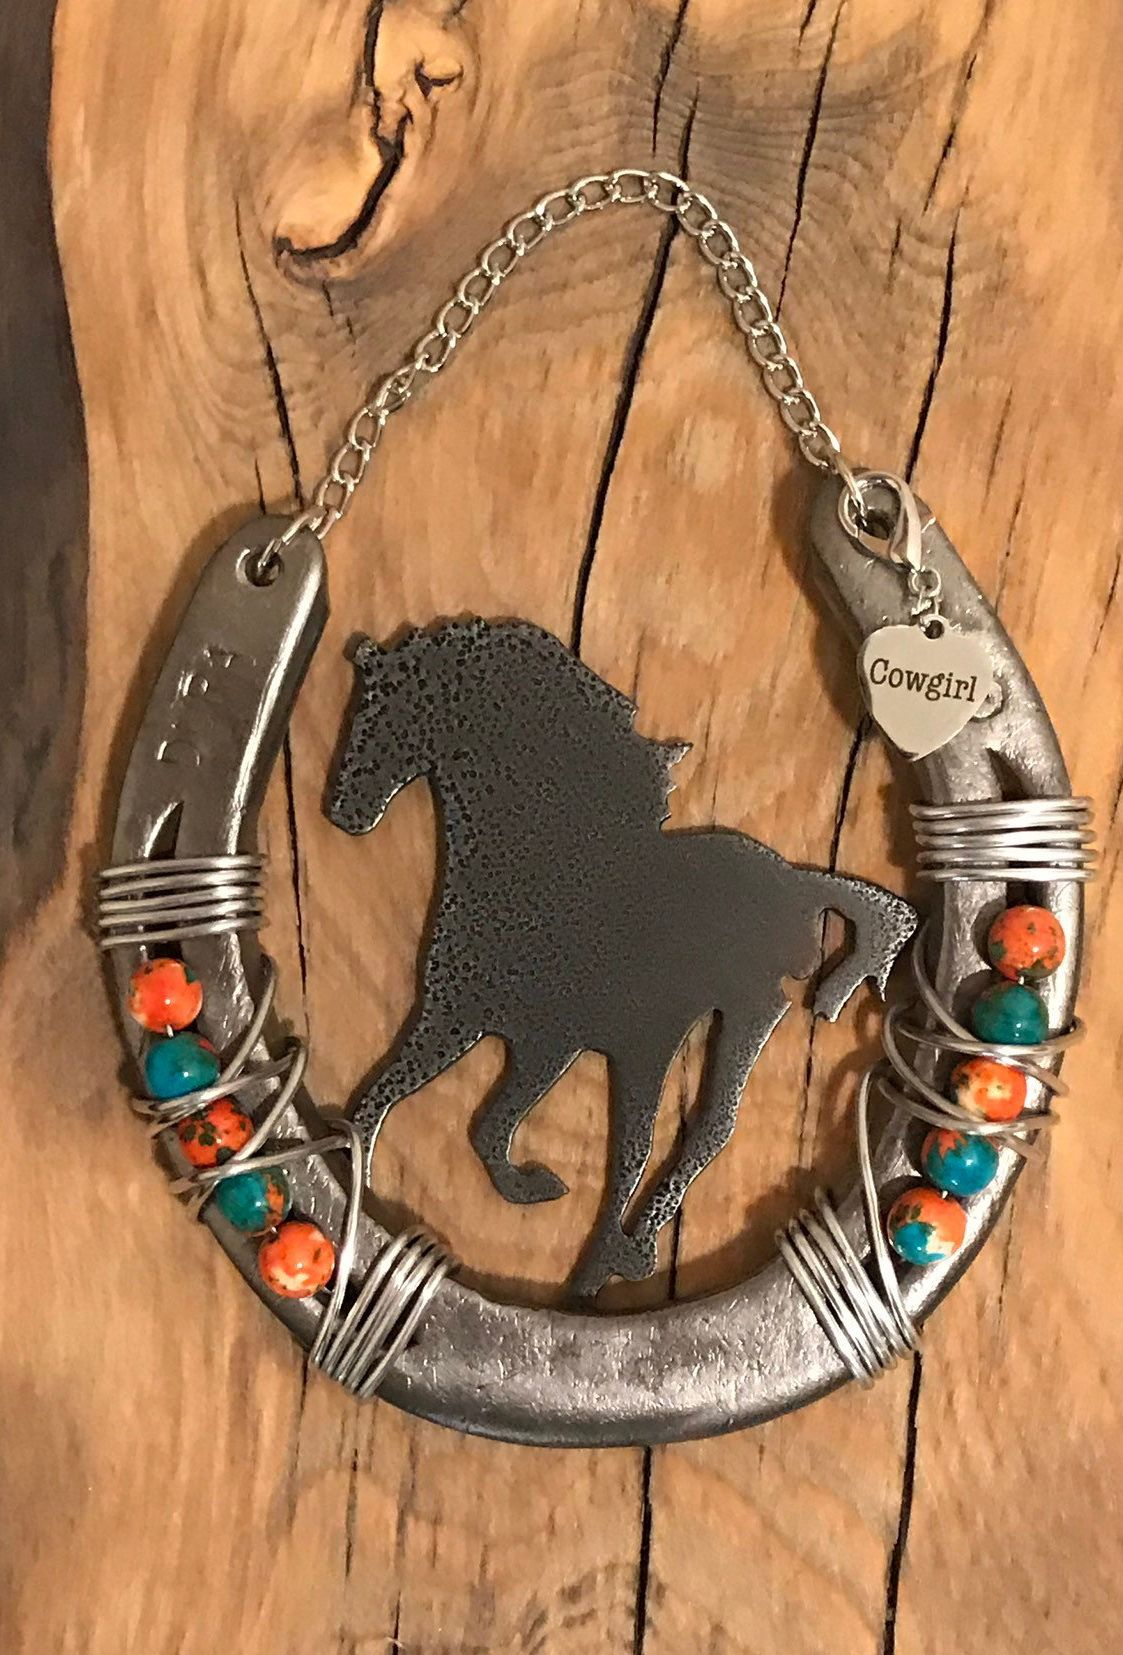 Excited To Share This Item From My Etsy Shop Cowgirl Gifts